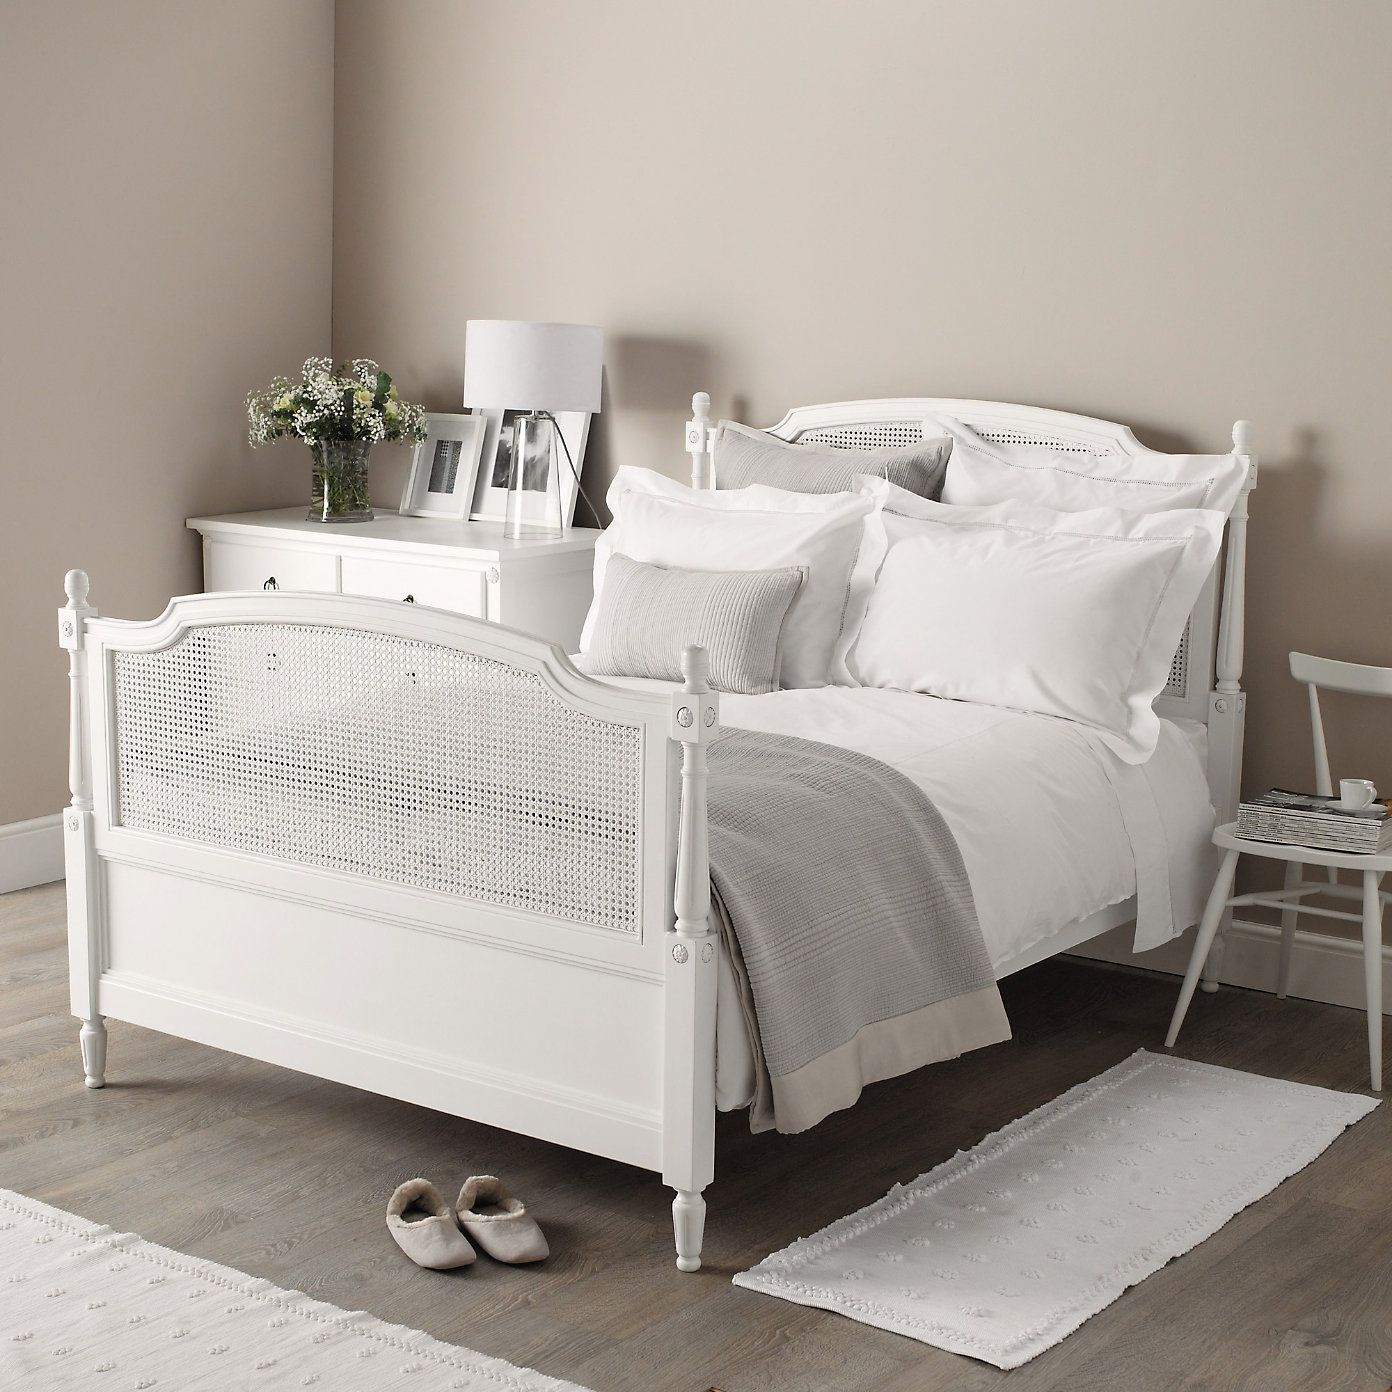 5 Bedroom Ideas For Autumn From The White Company: Florence Cane Bed - Beds